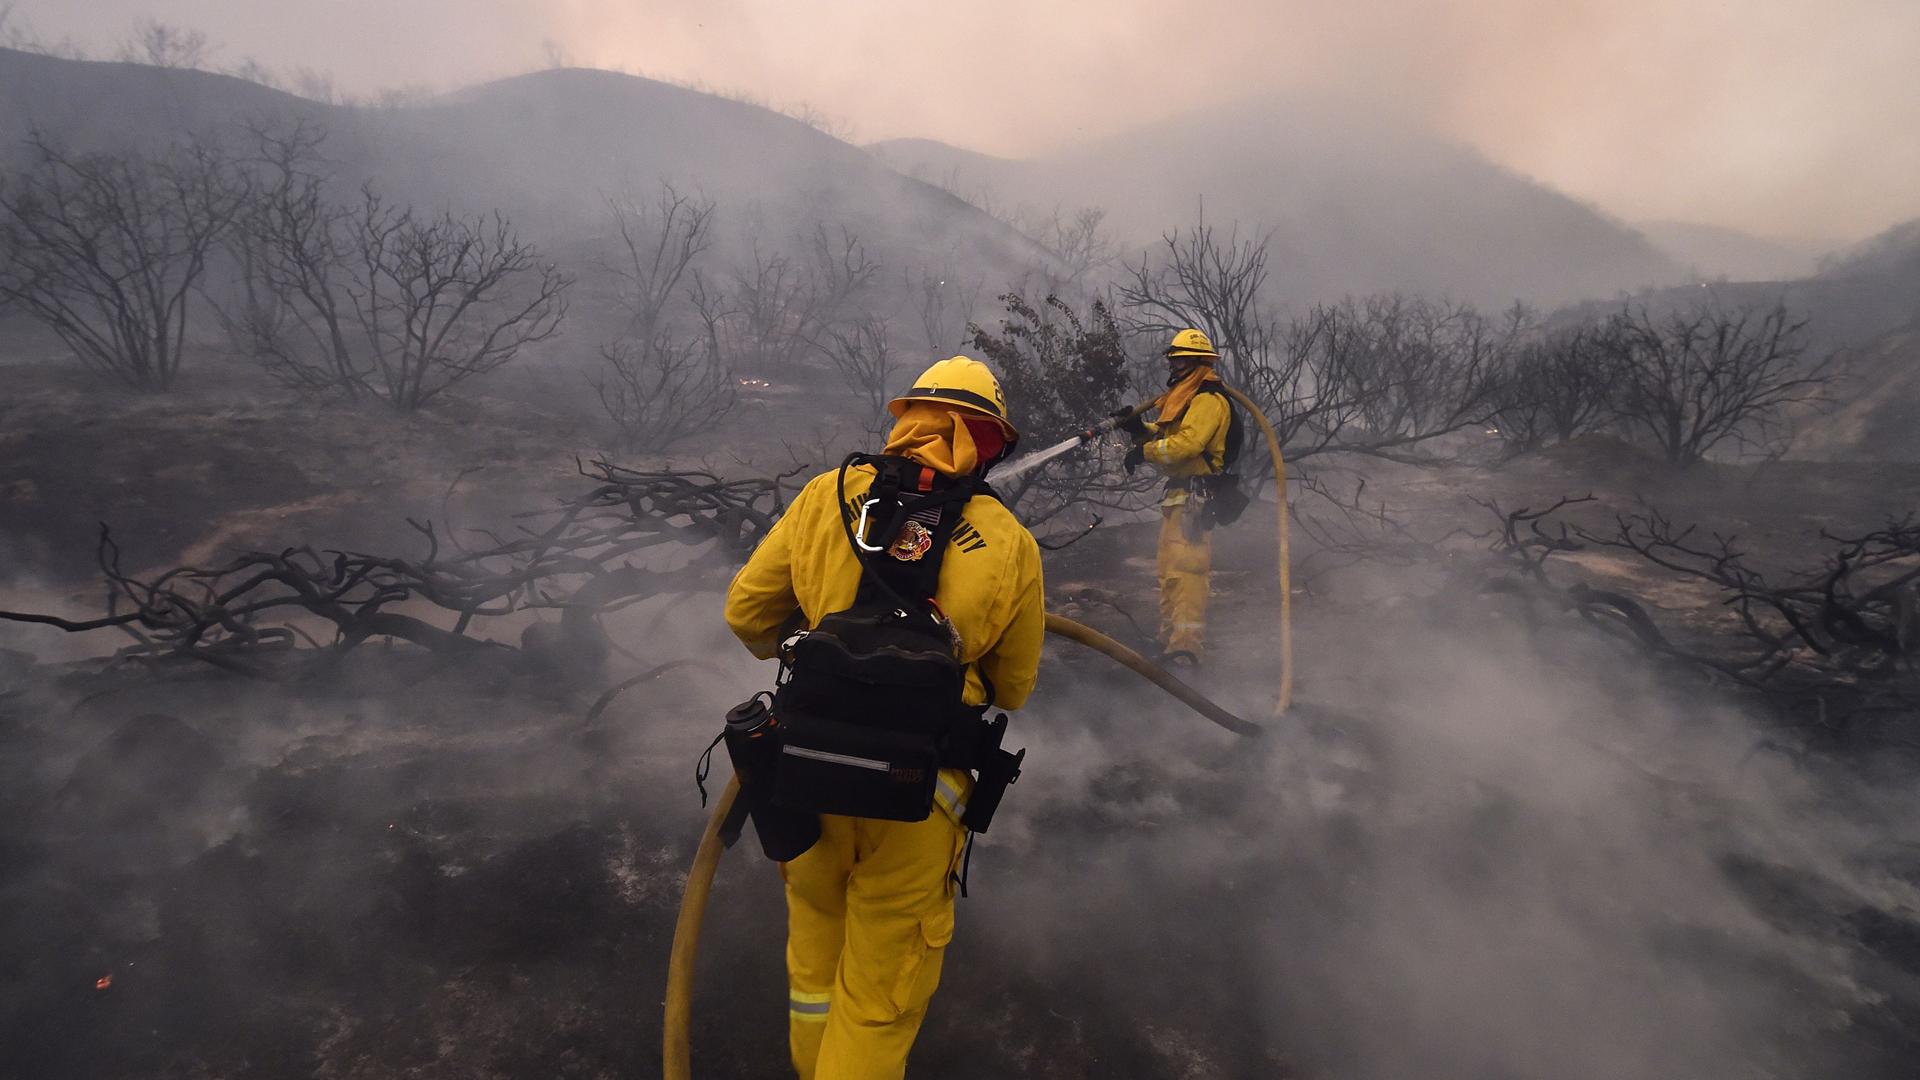 Riverside County firefighters douse embers from the Holy Fire in Lake Elsinore on Aug. 9, 2018. (Credit: ROBYN BECK/AFP/Getty Images)